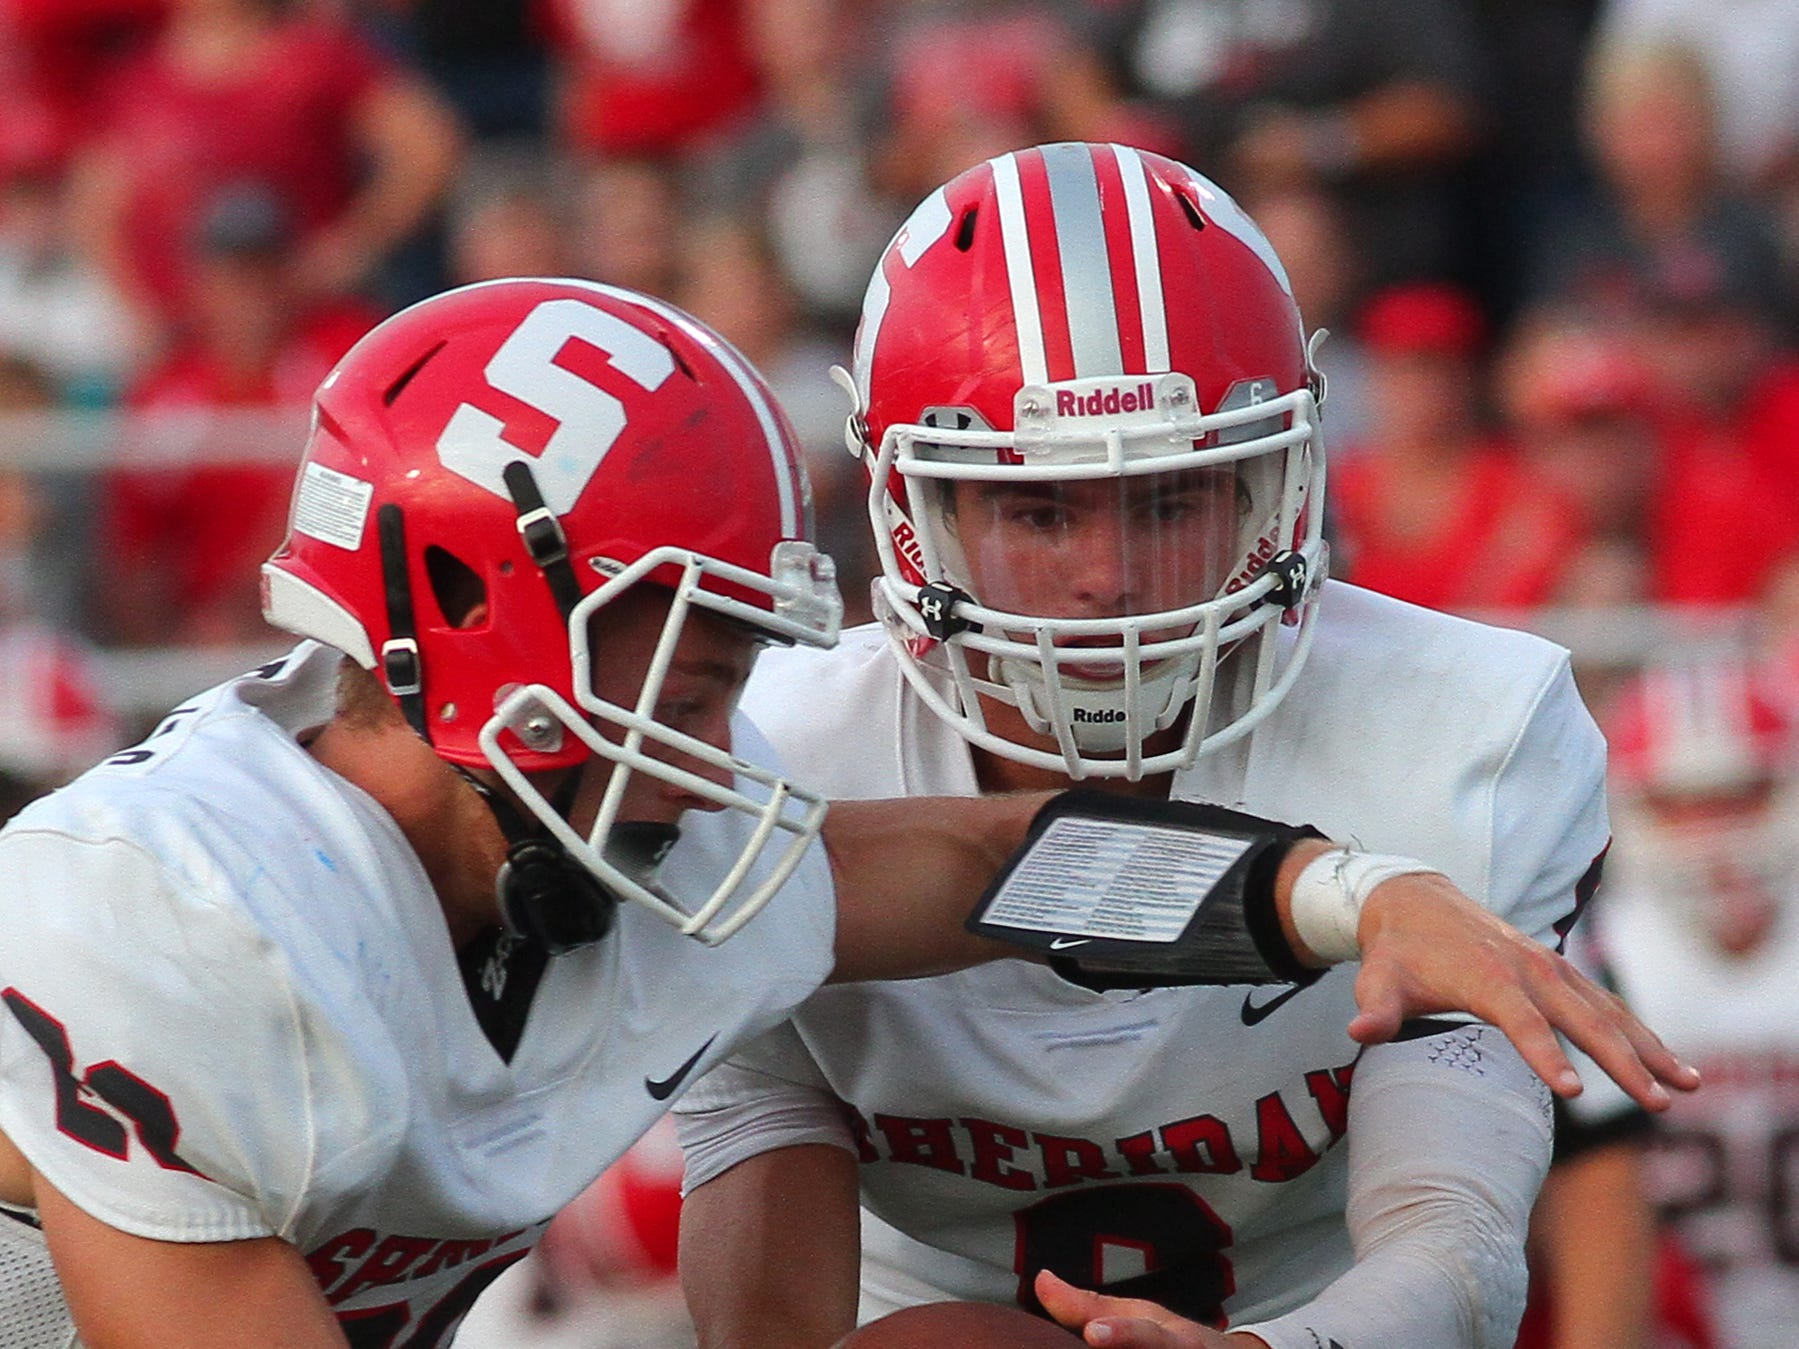 Sheridan senior quarterback Ethan Heller hands the ball to senior Jacob Morgan Friday during the team's 36-21 victory over Licking Valley.